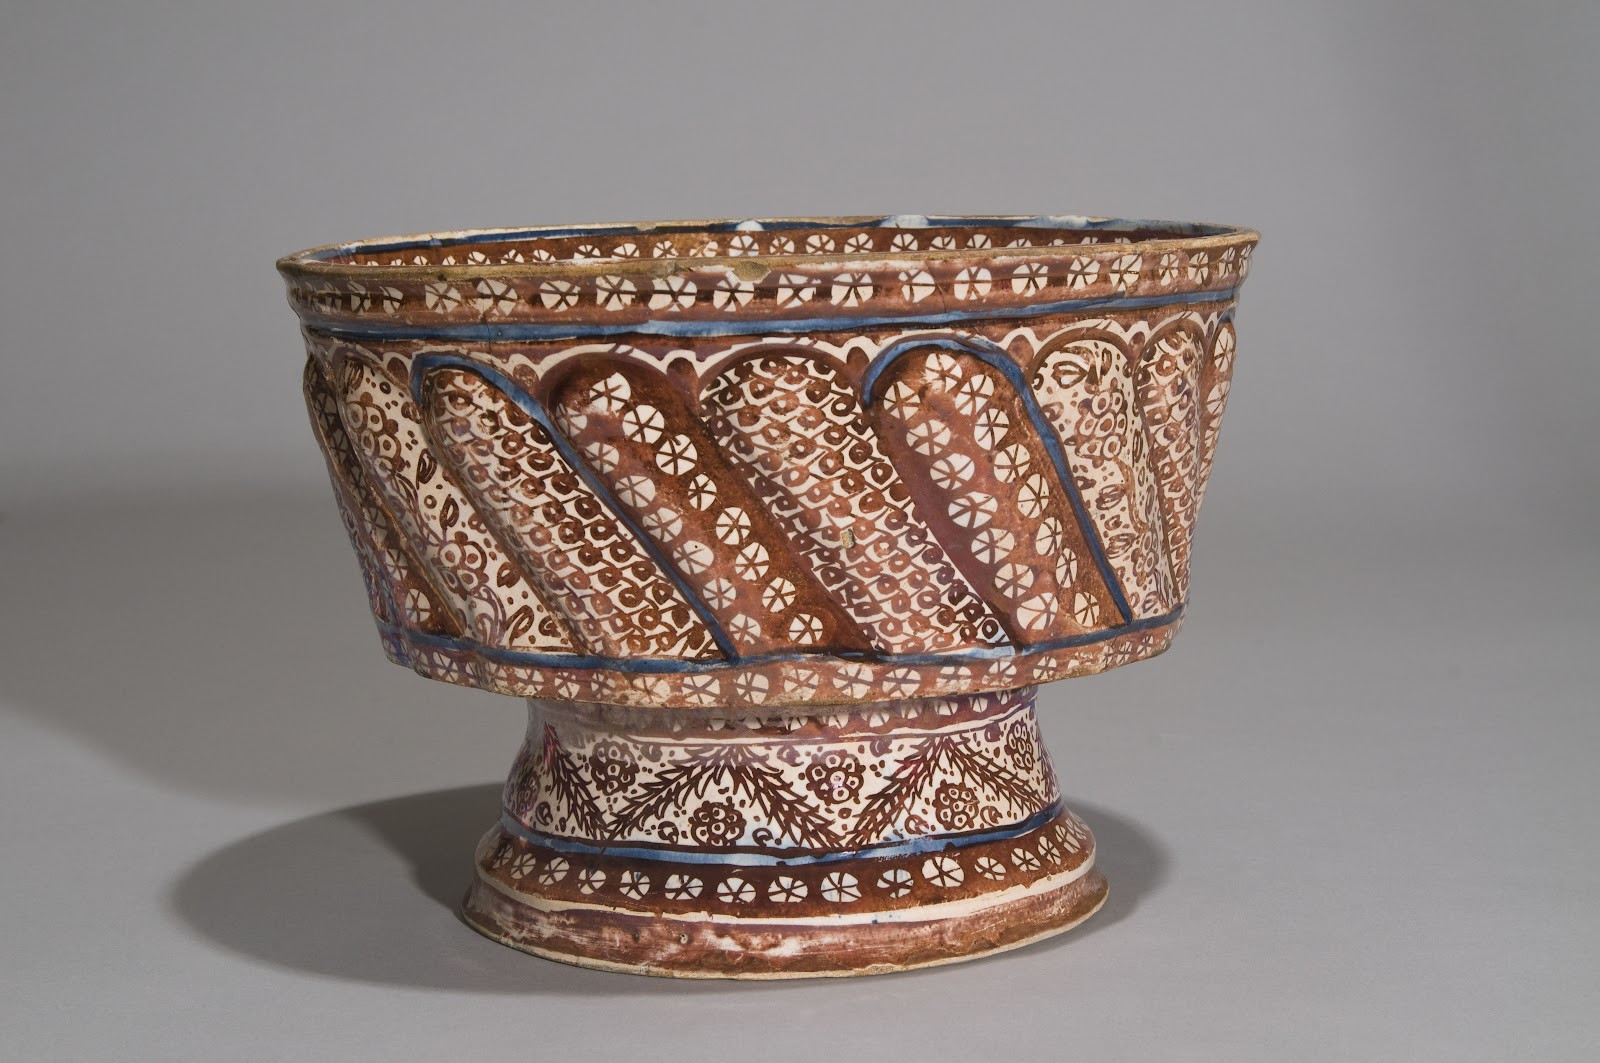 hull cornucopia vase of style court inventive synthesis shangri la with footed basin spain valencia probably manises ca 1500 earthenware underglaze painted in blue overglaze painted in luste